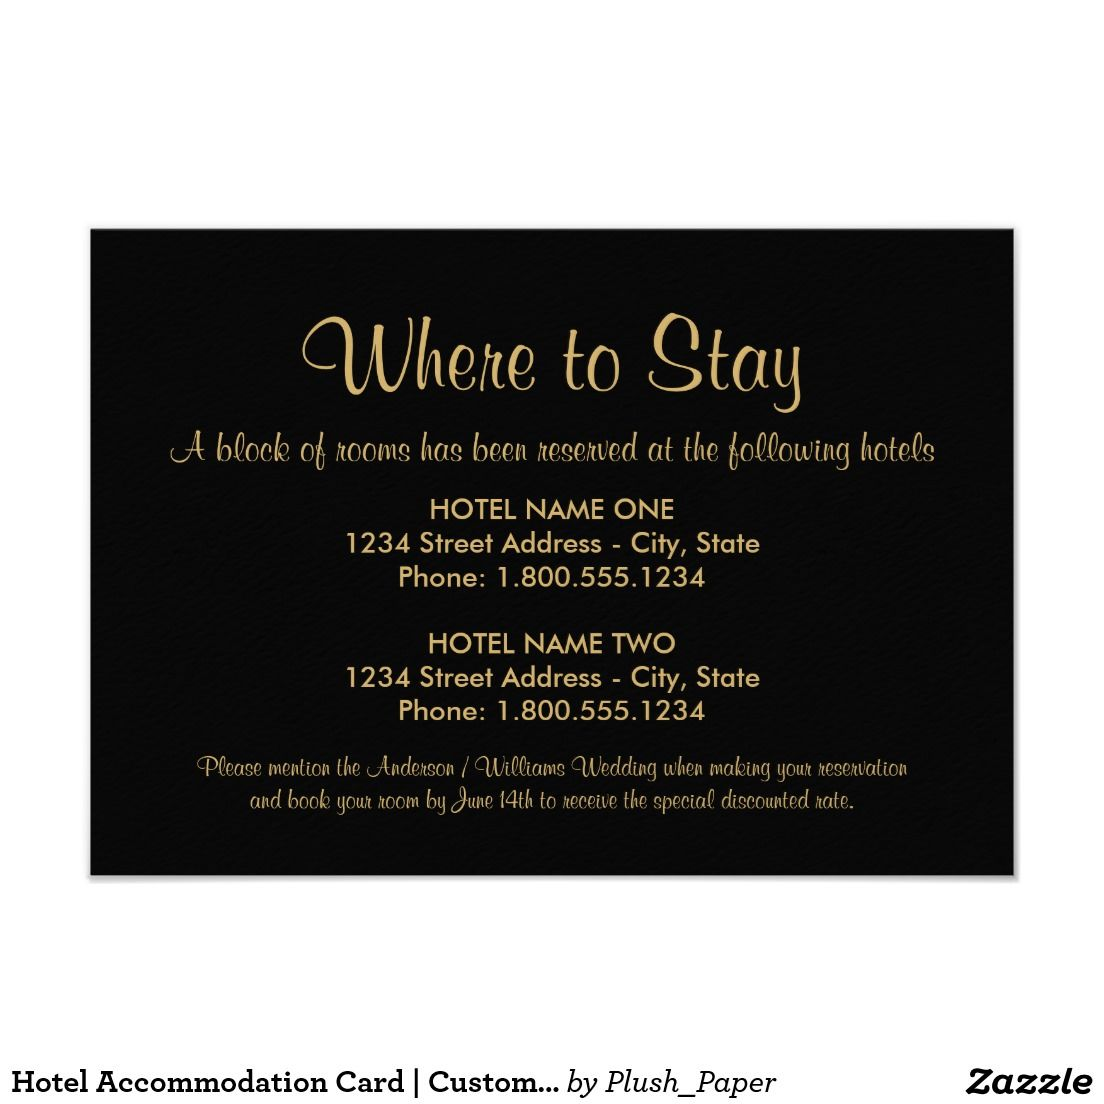 Hotel accommodation card custom colors accommodations card hotel accommodation card custom colors gold wedding invitationszazzle filmwisefo